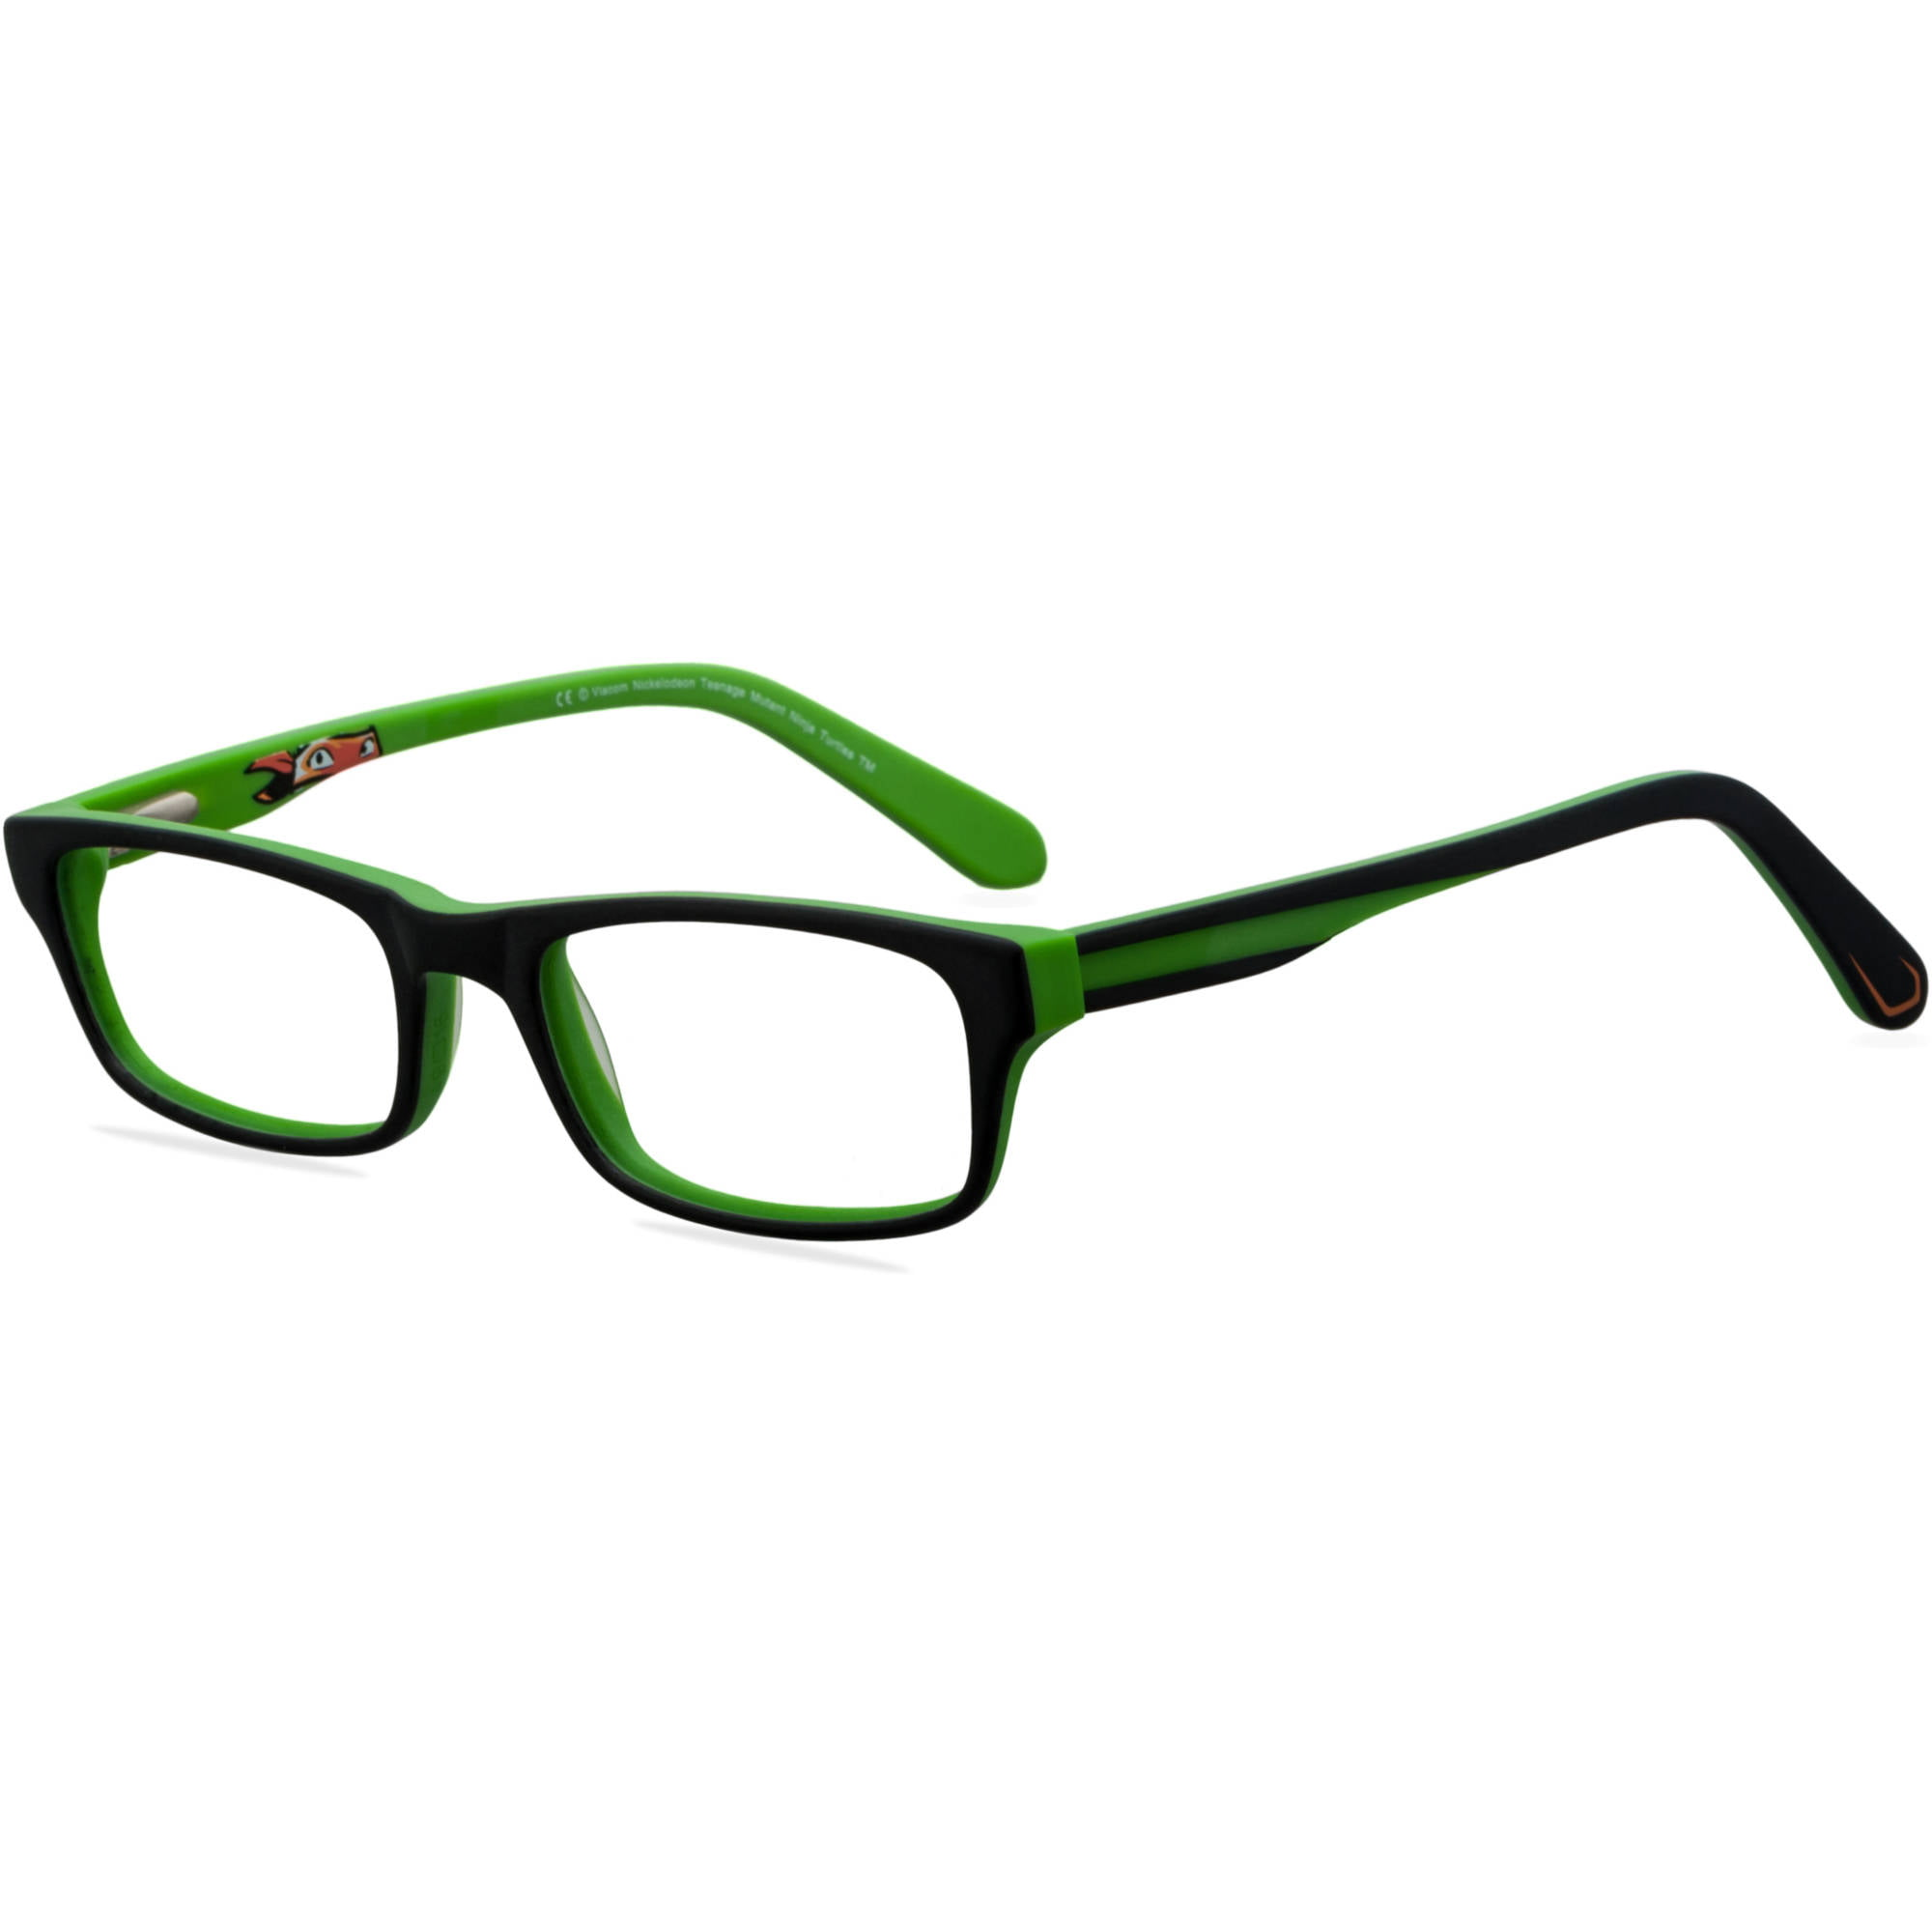 Prescription Eyeglasses - Walmart.com